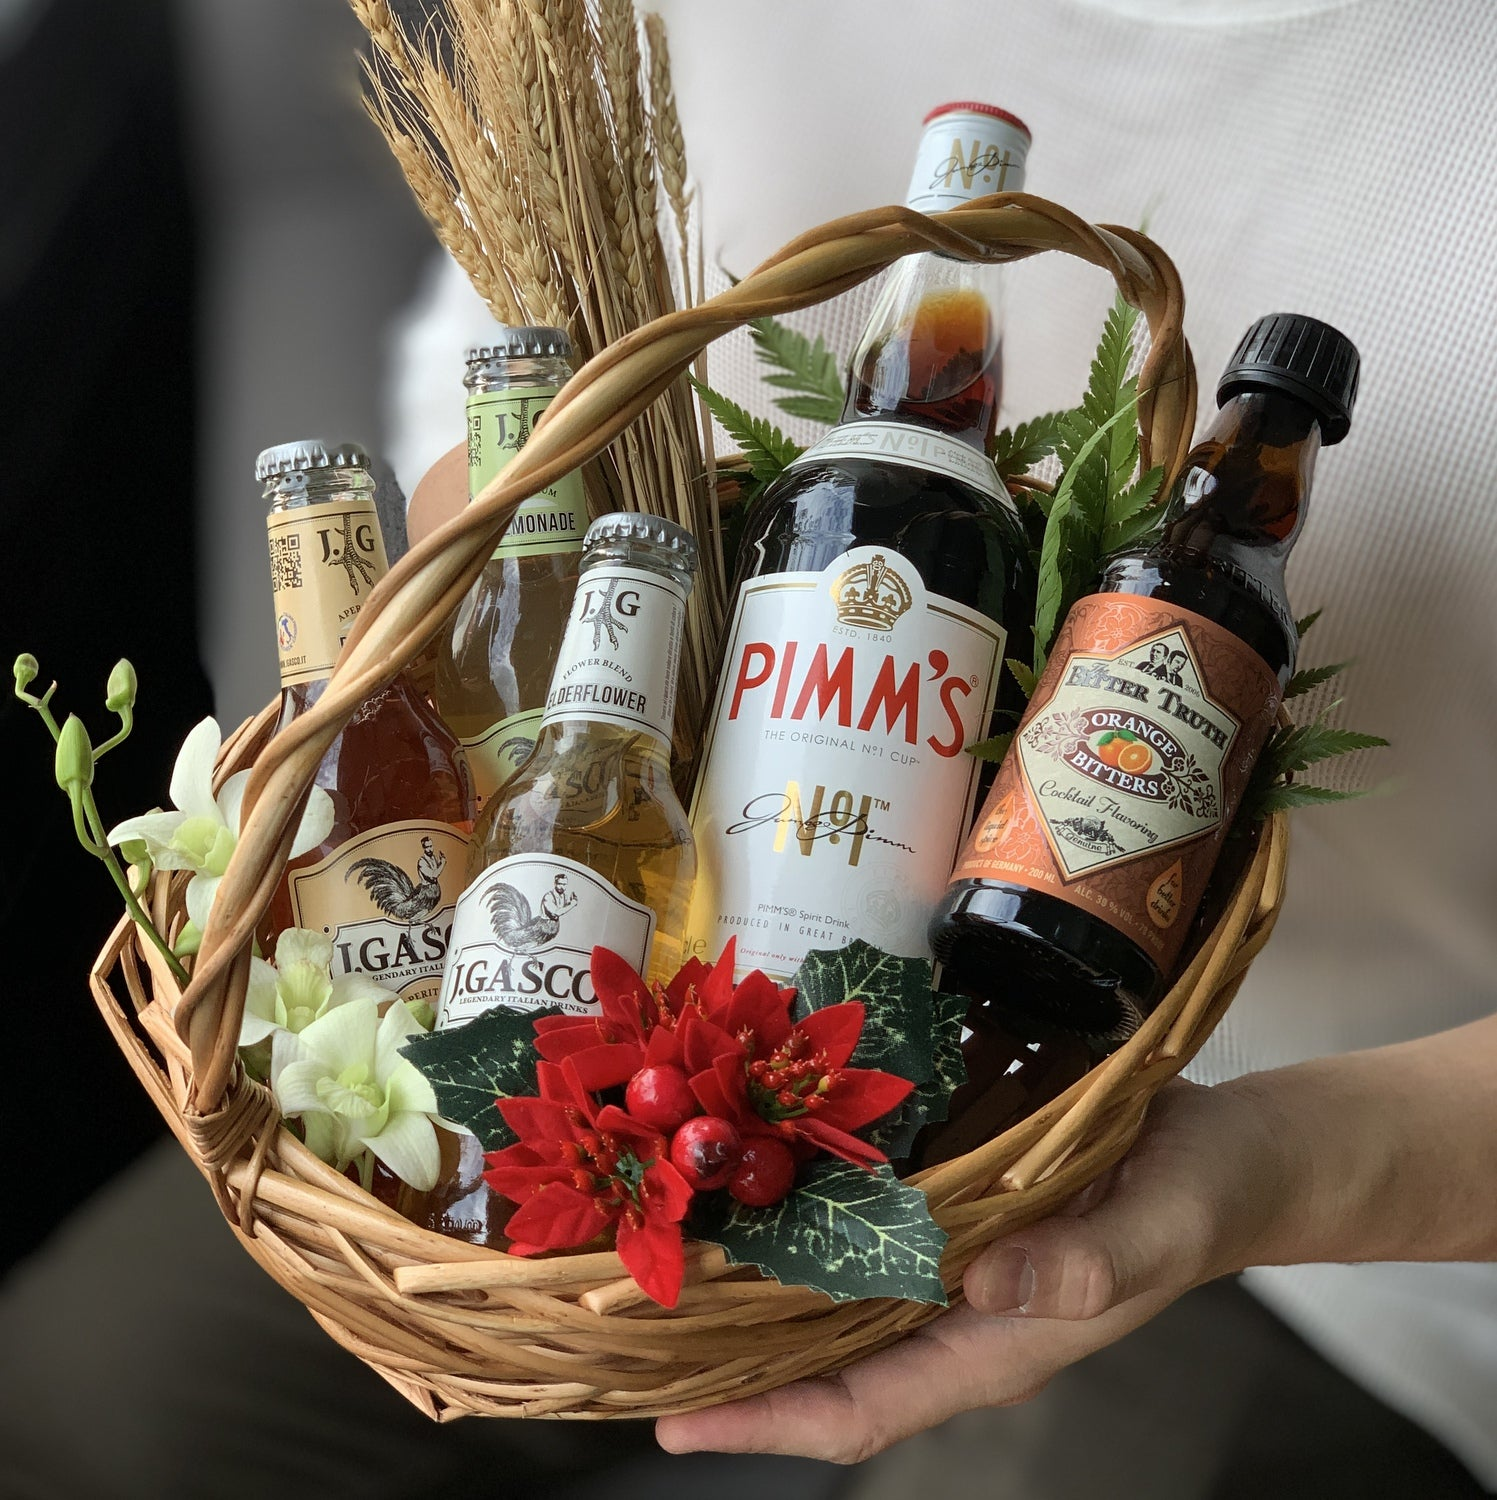 The Pimm's Cup Mixology Hamper